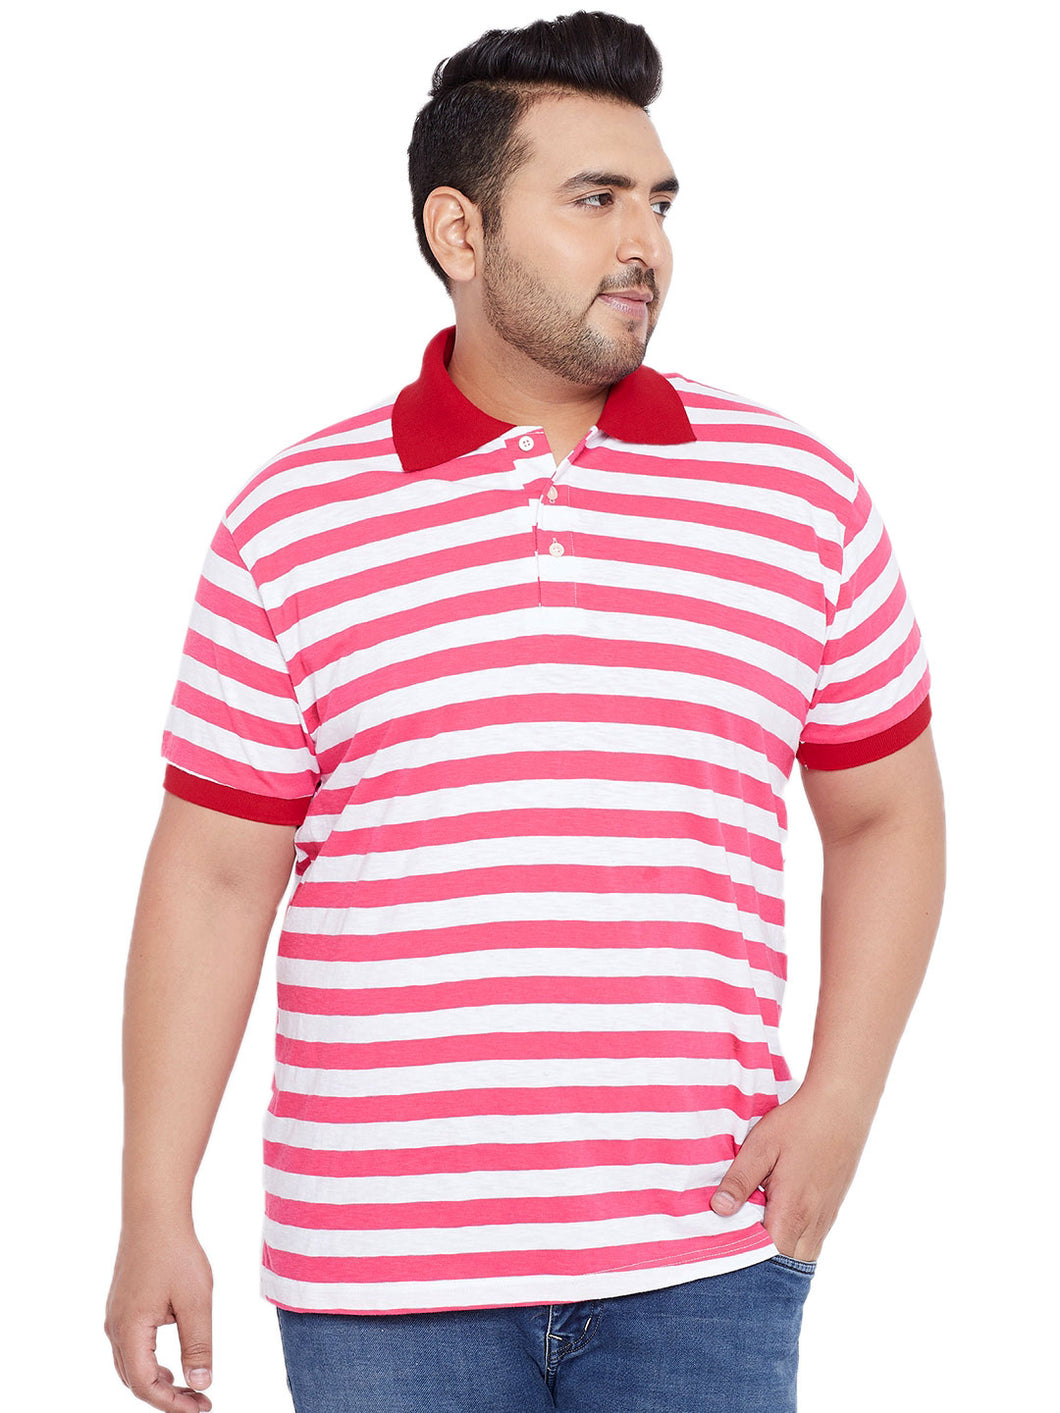 bigbanana Clayton White & Pink Striped Plus SIze Polo Collar T-shirt